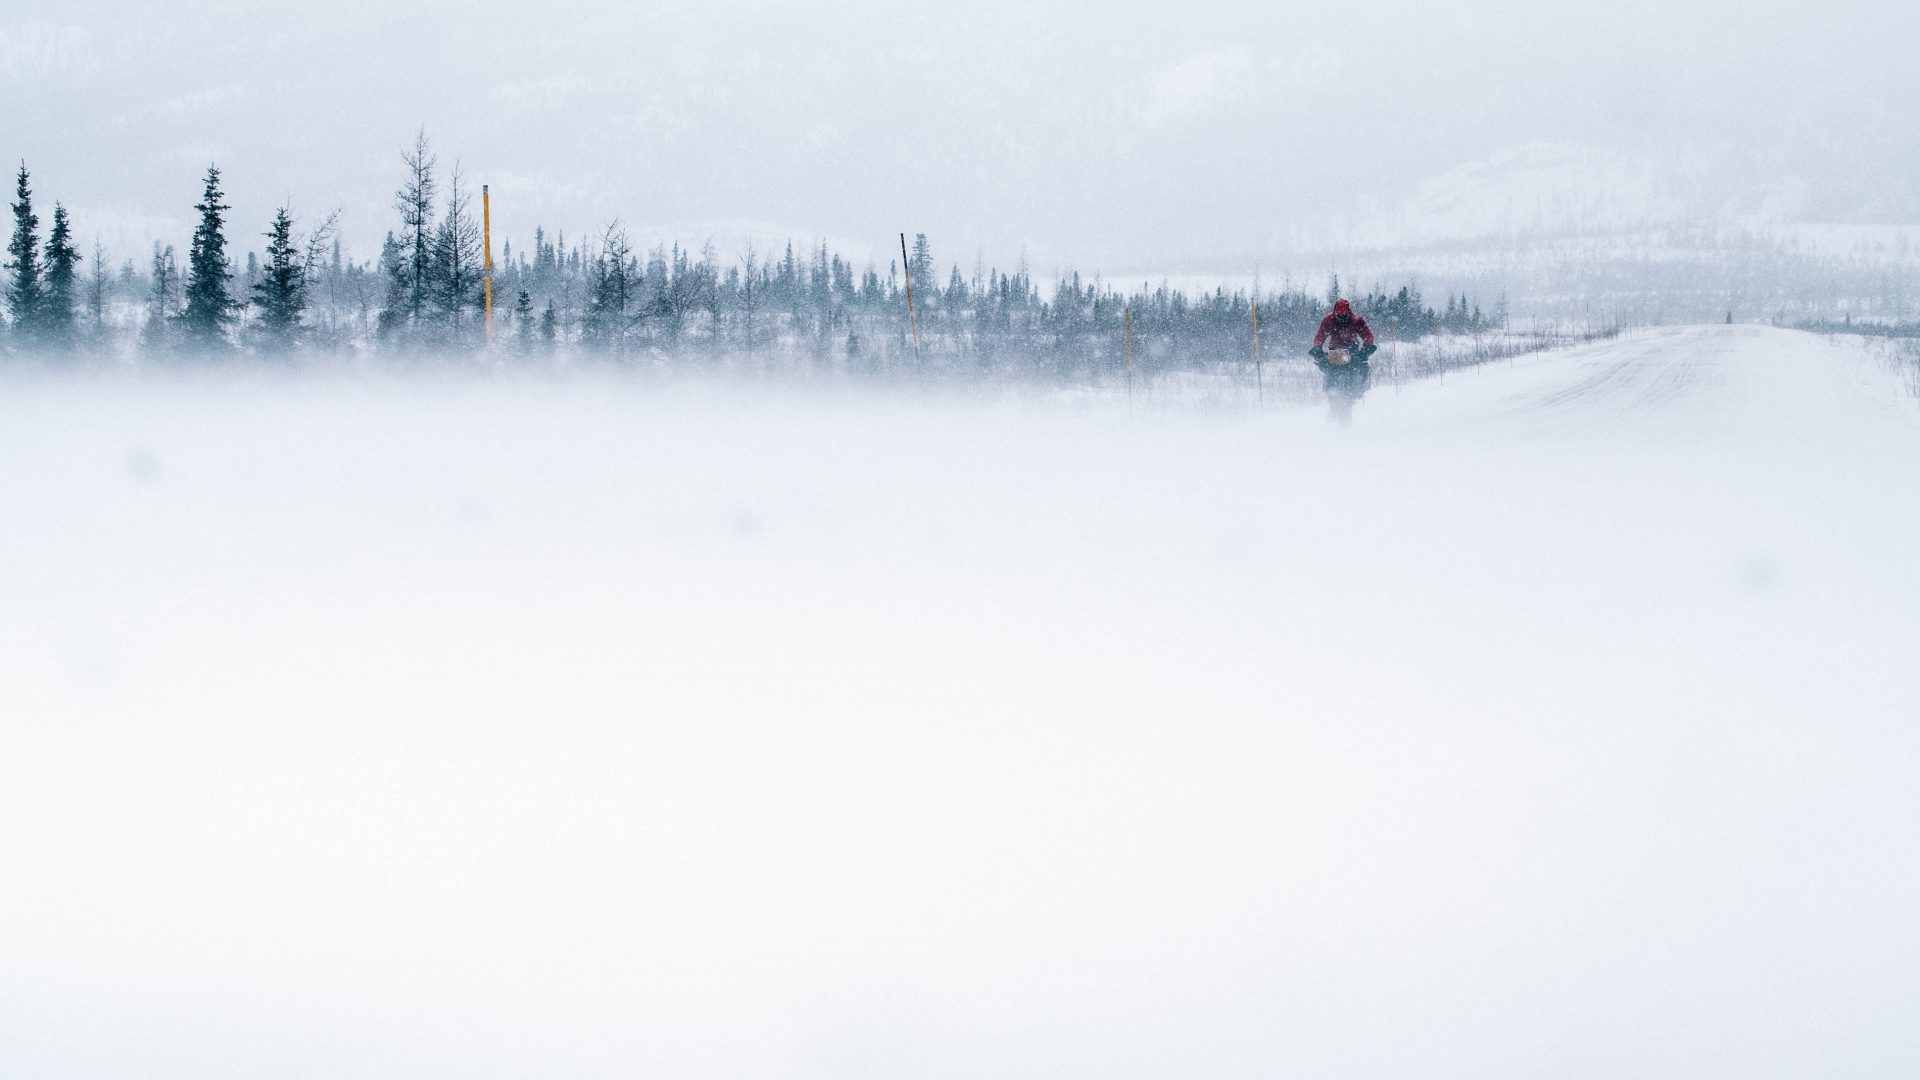 Tackling a snow storm along the Dempster Highway, Canada.